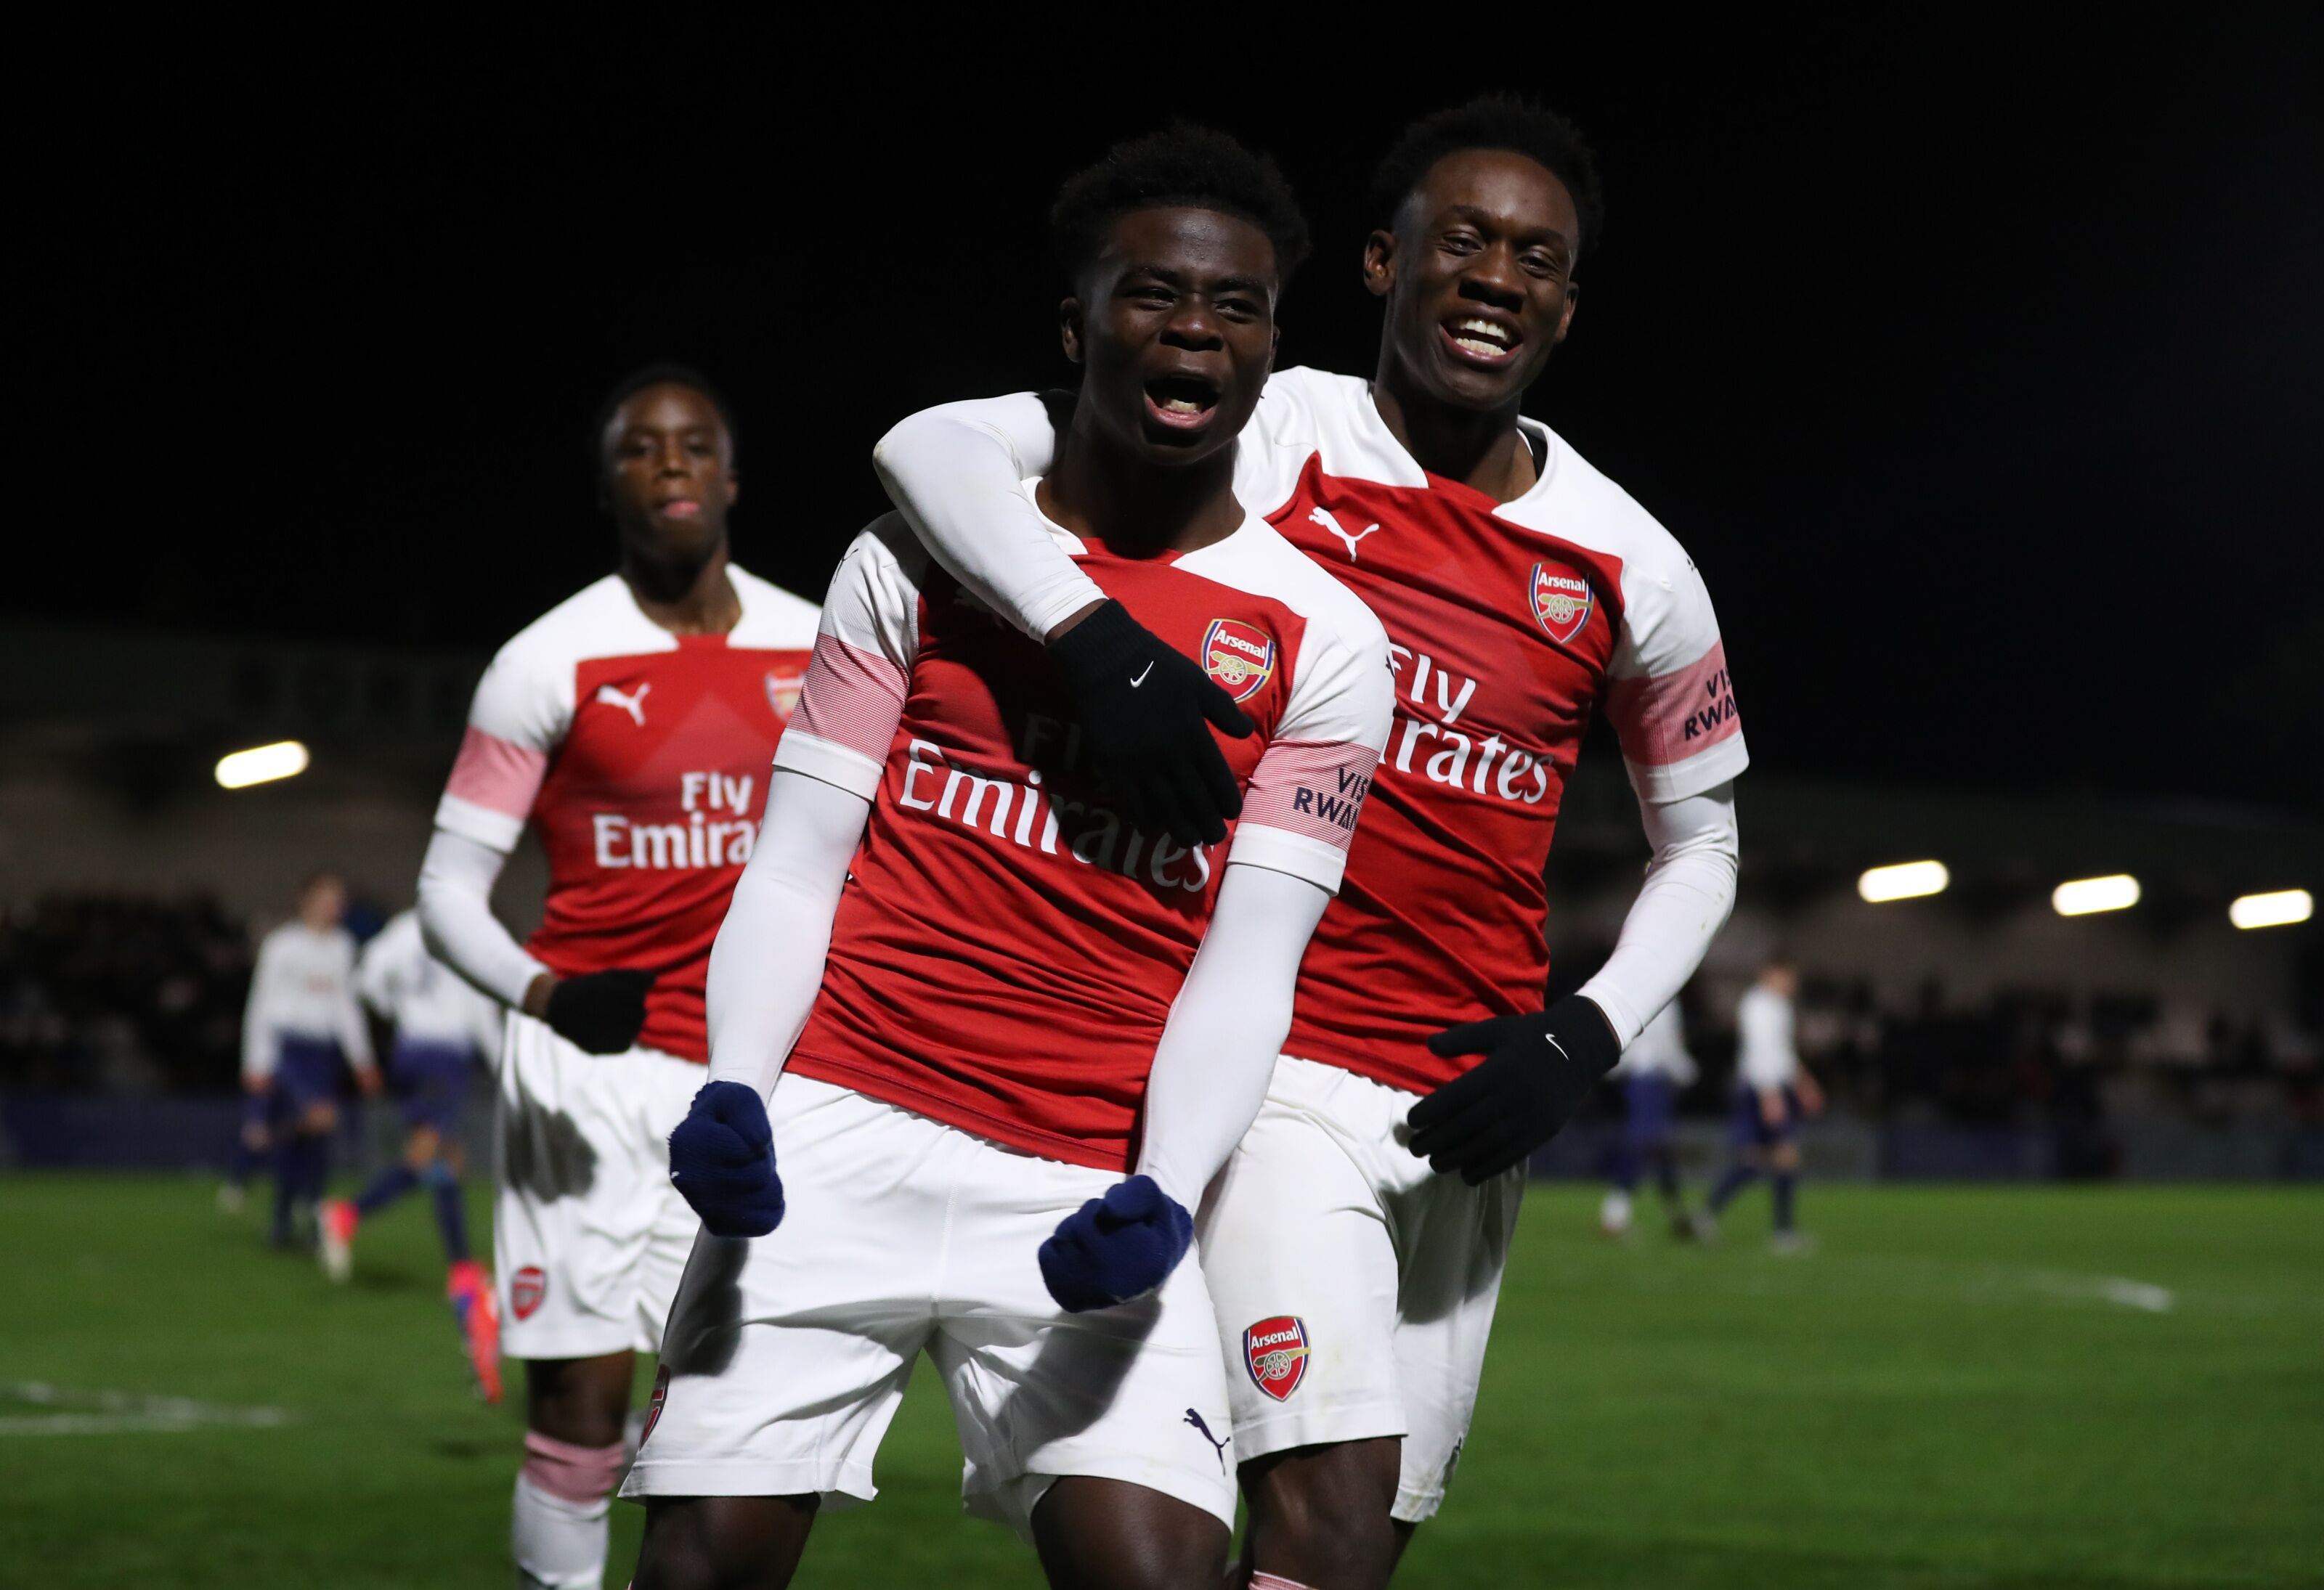 Arsenal's Hale End Academy could be their saving grace